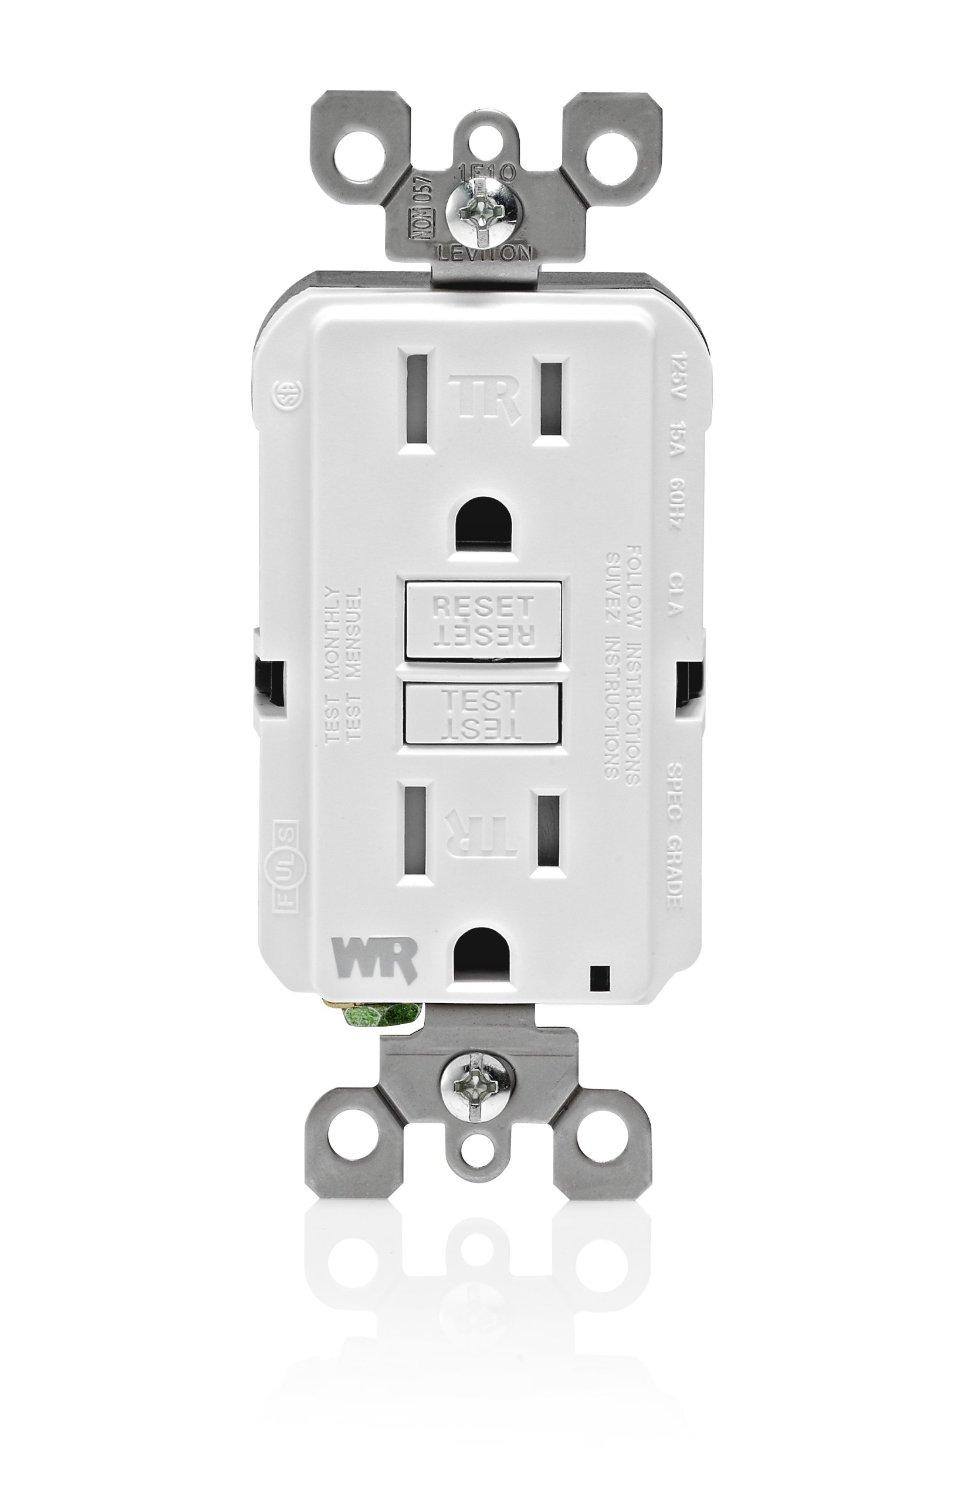 Leviton Gfwt1 W Self Test Smartlockpro Slim Gfci Weather Resistant Line Load Wiring Diagram From The Manufacturer